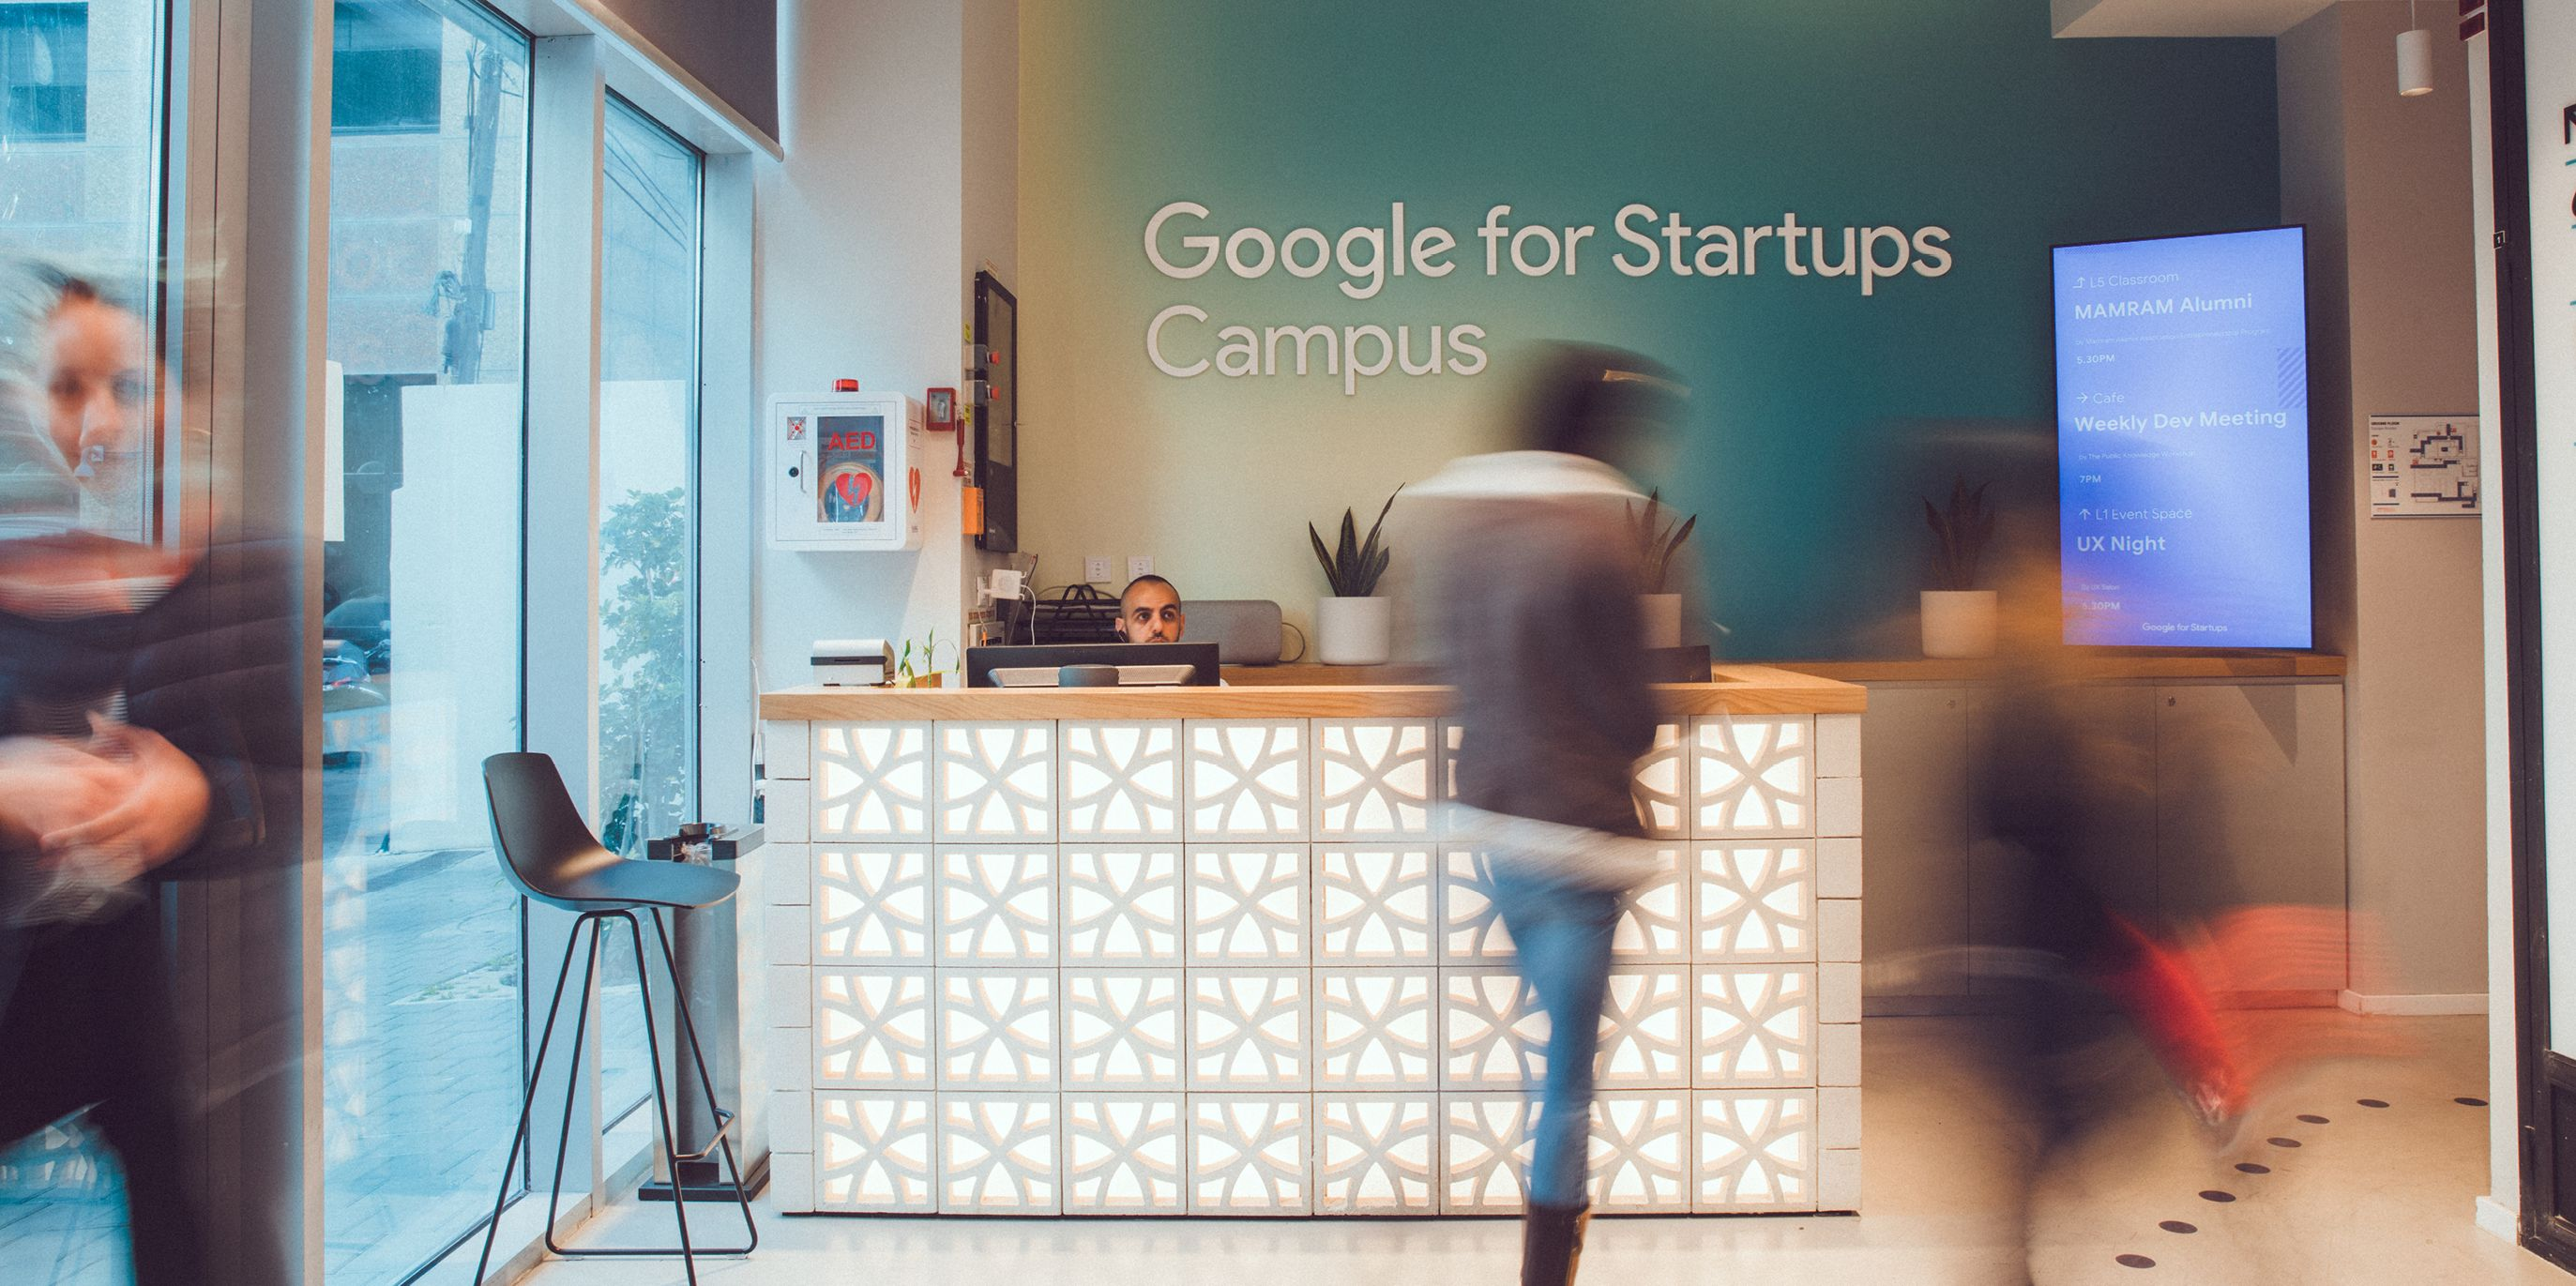 Google for Startups Campus Tel Aviv welcome desk